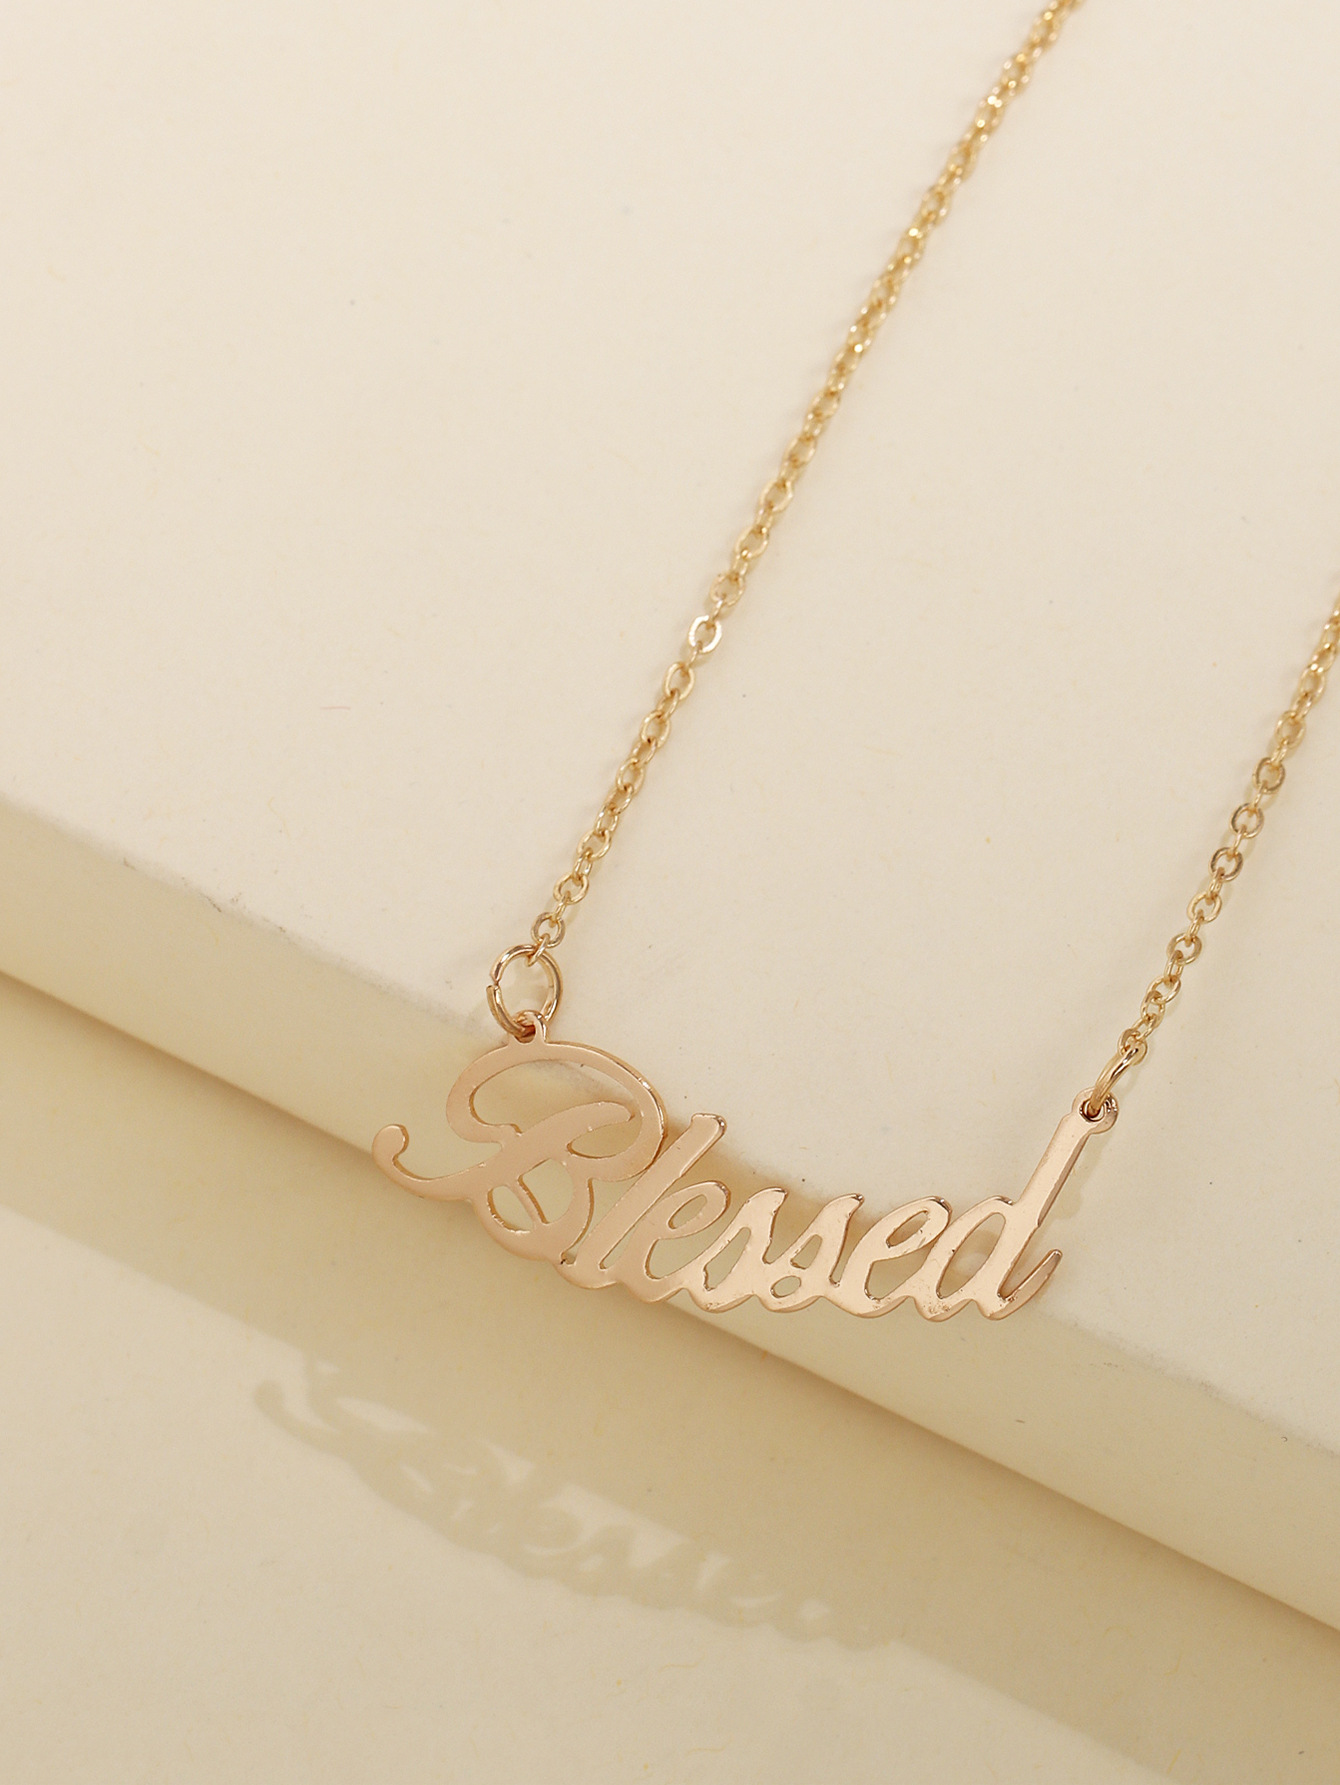 fashion English alphabet necklace alloy neck chain hot selling necklace women wholesale nihaojewelry NHUI221112